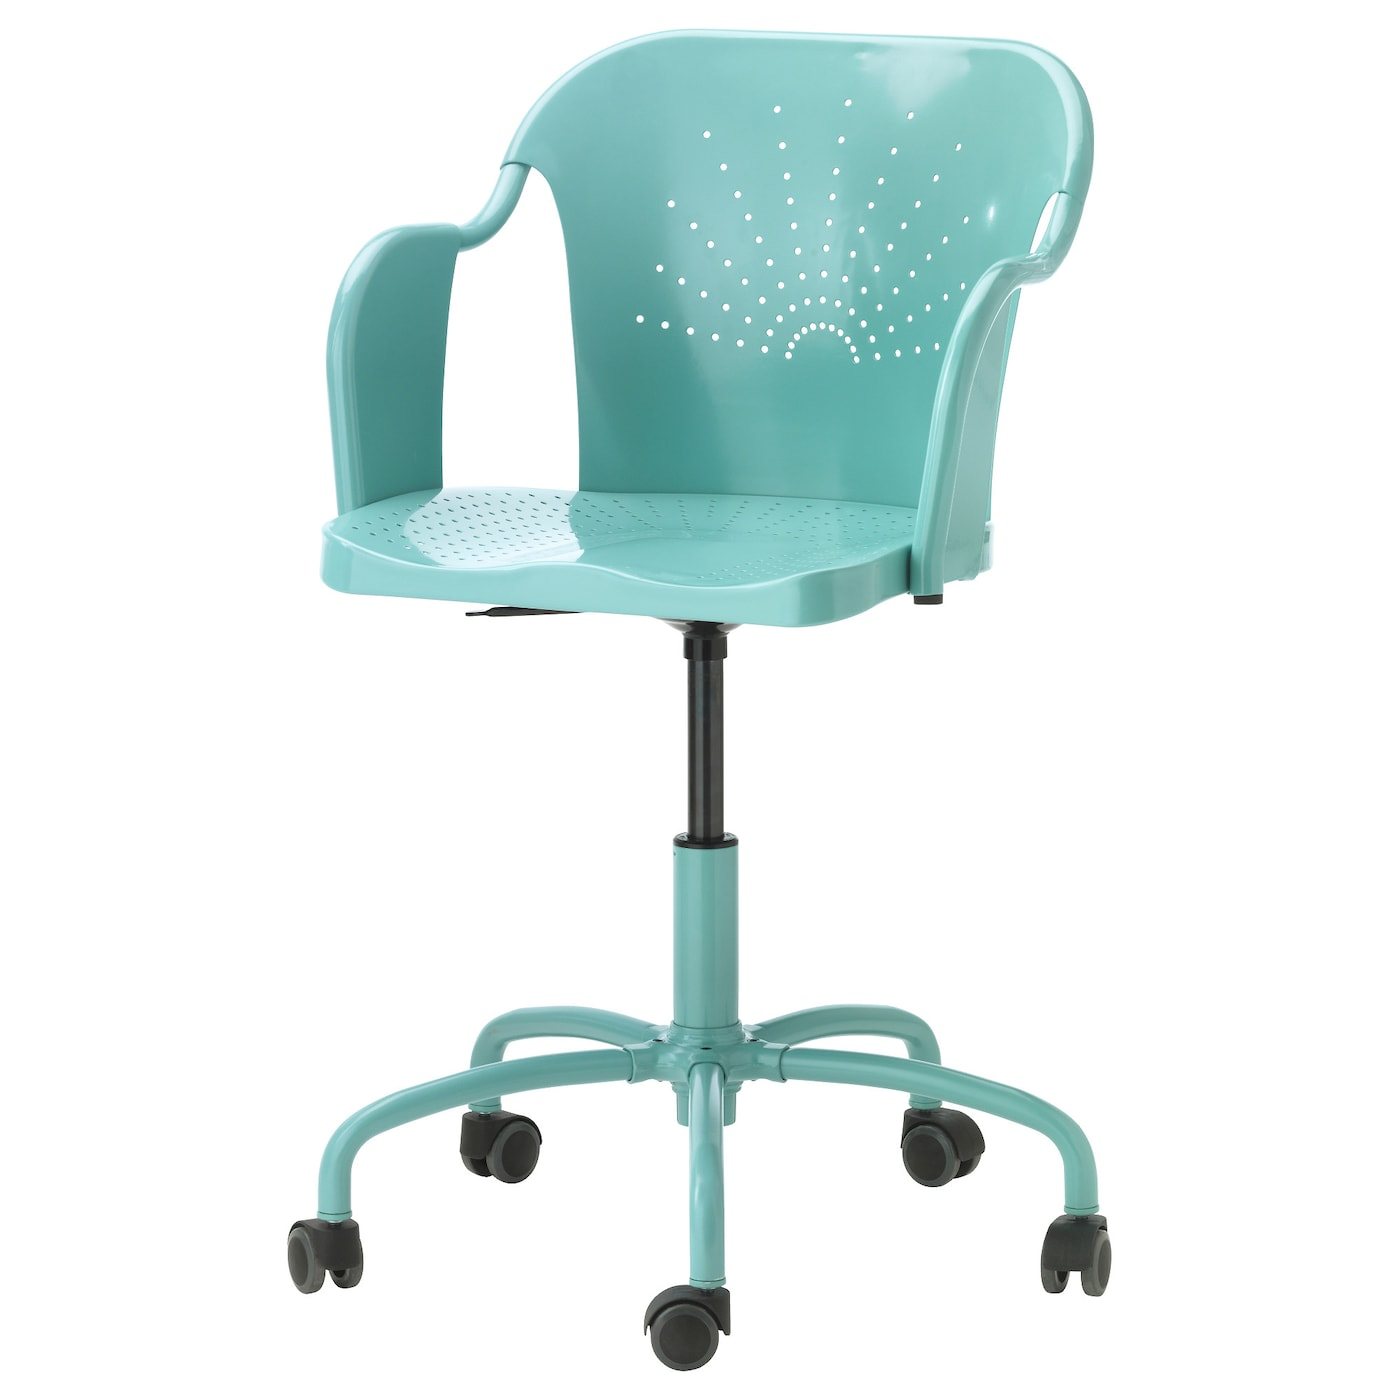 IKEA ROBERGET swivel chair You sit comfortably since the chair is adjustable in height.